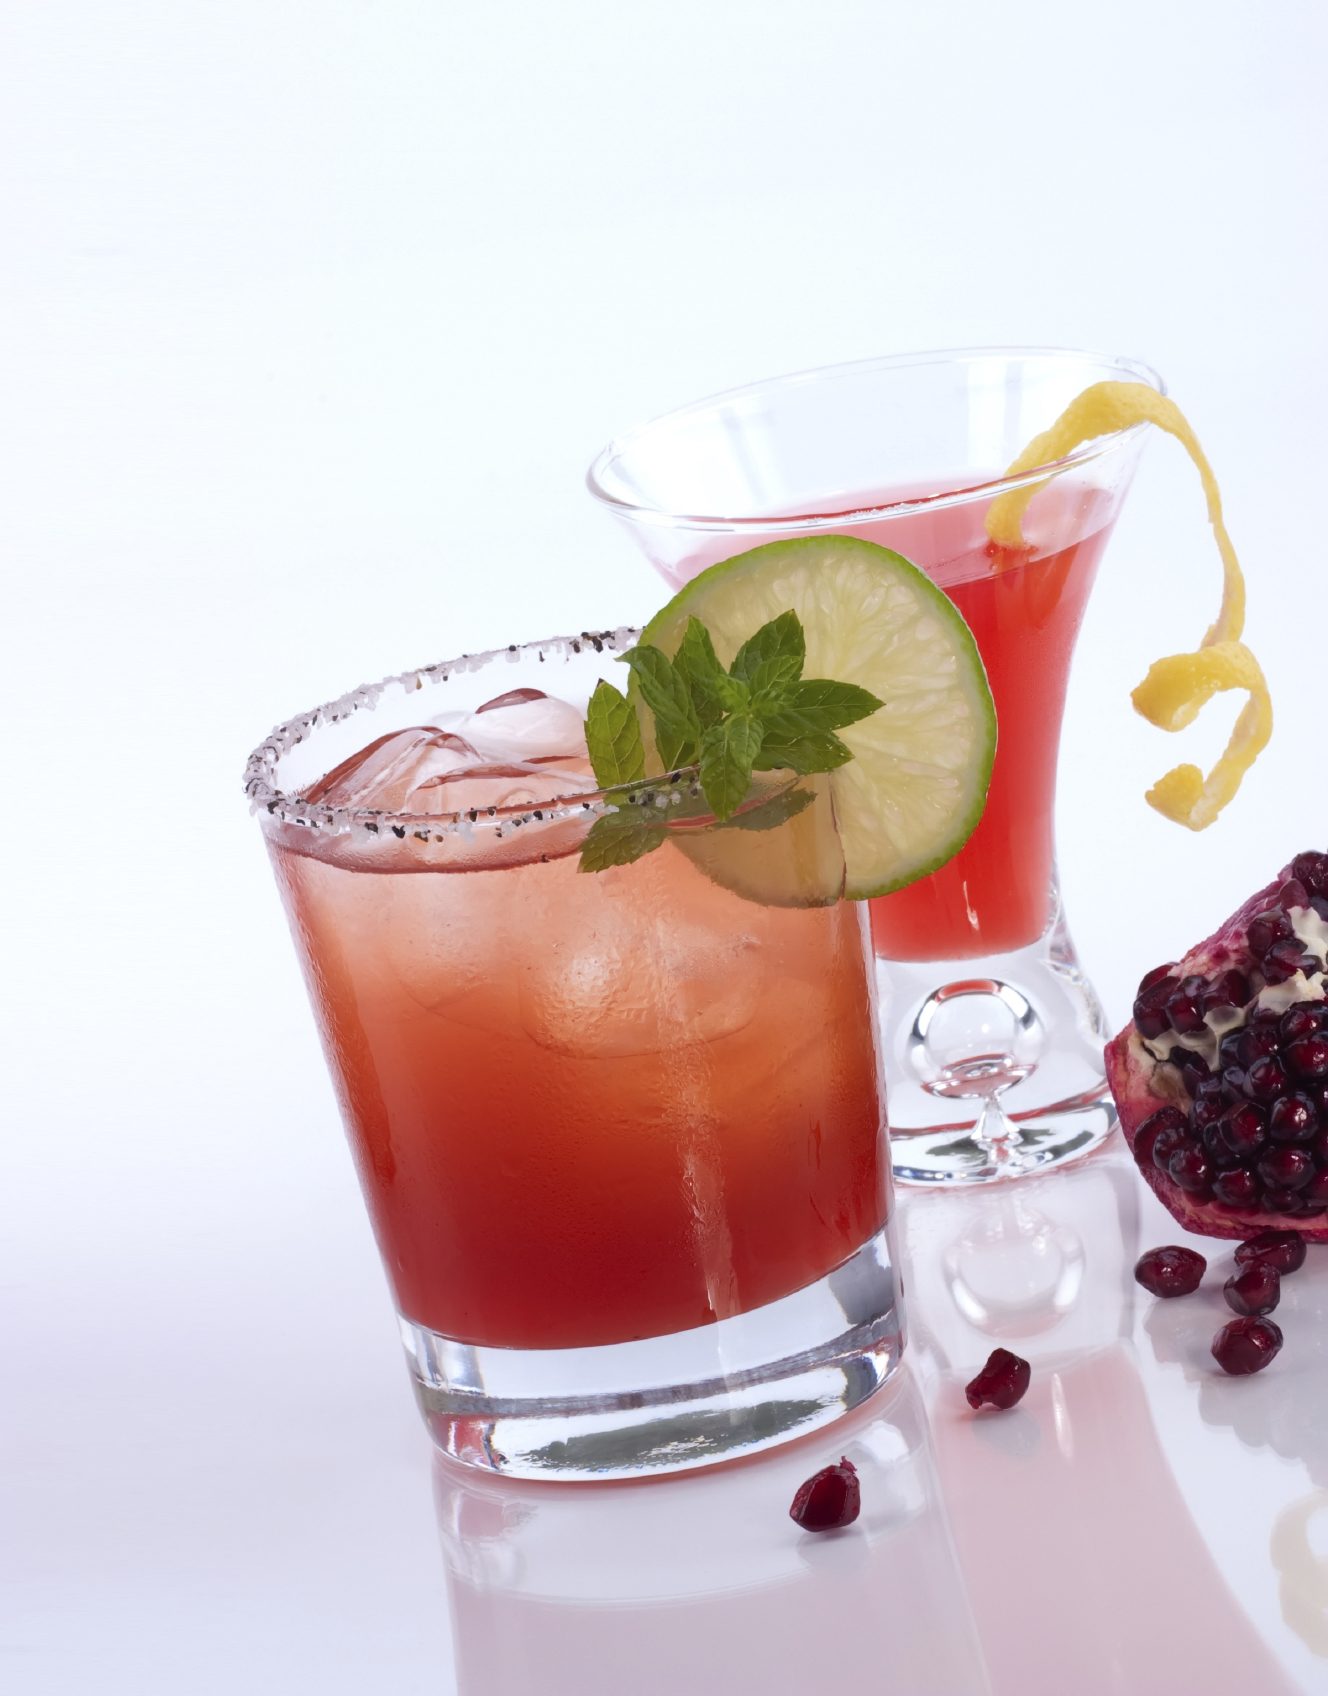 Pomegranate martini and Mojito - Most popular cocktails series